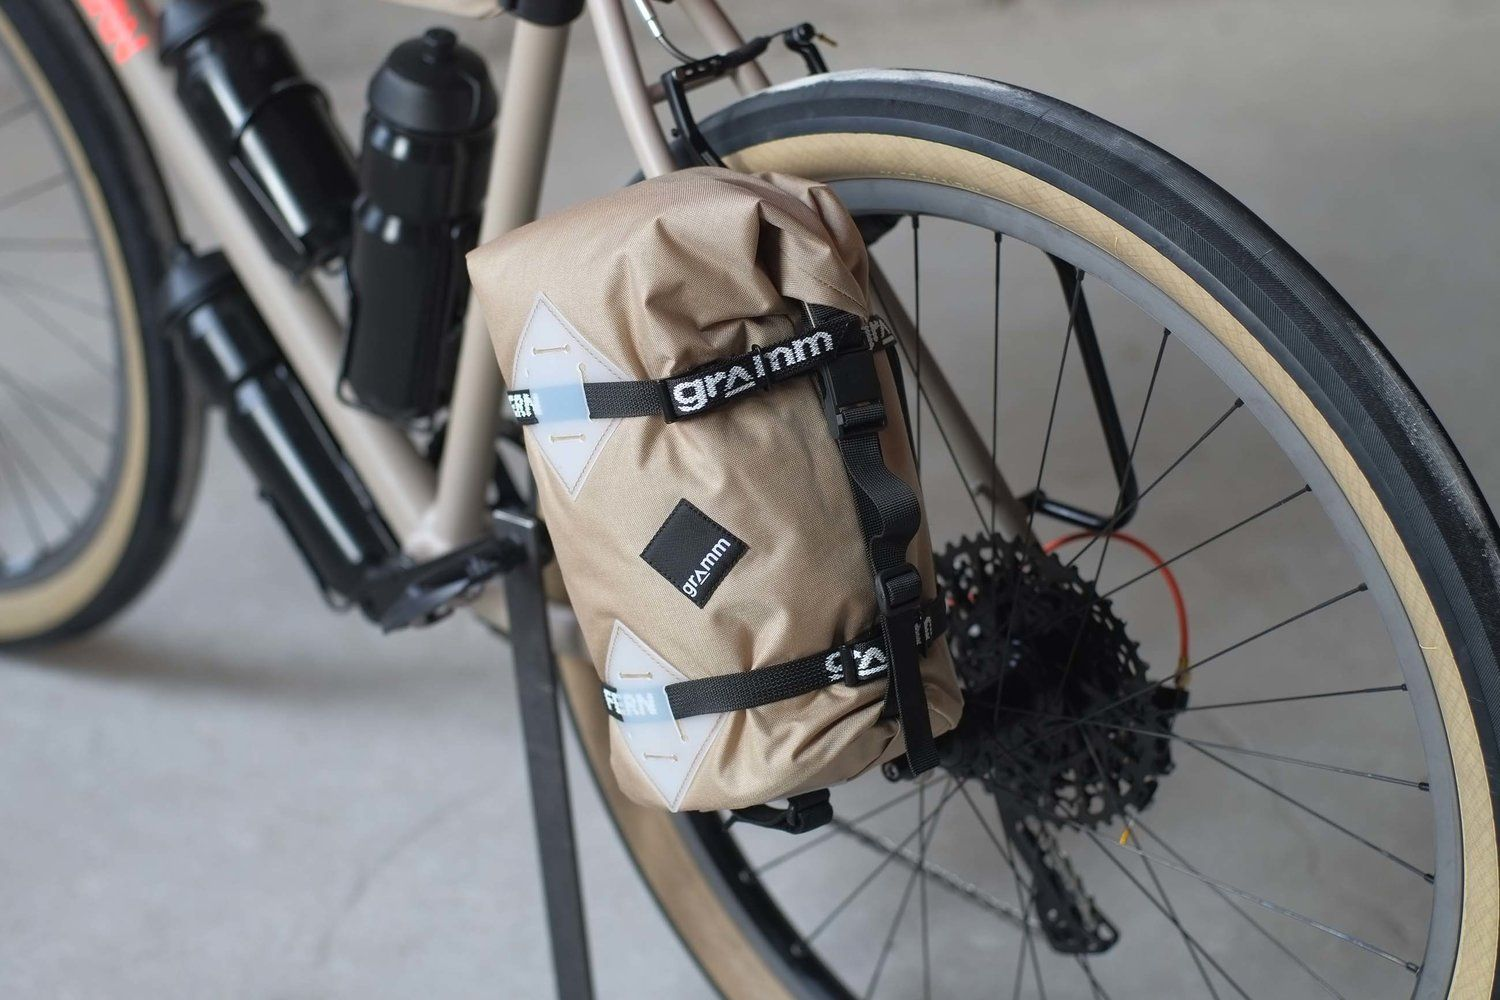 Dscf5075 Jpg Bike Bag Urban Bike Bike Camping